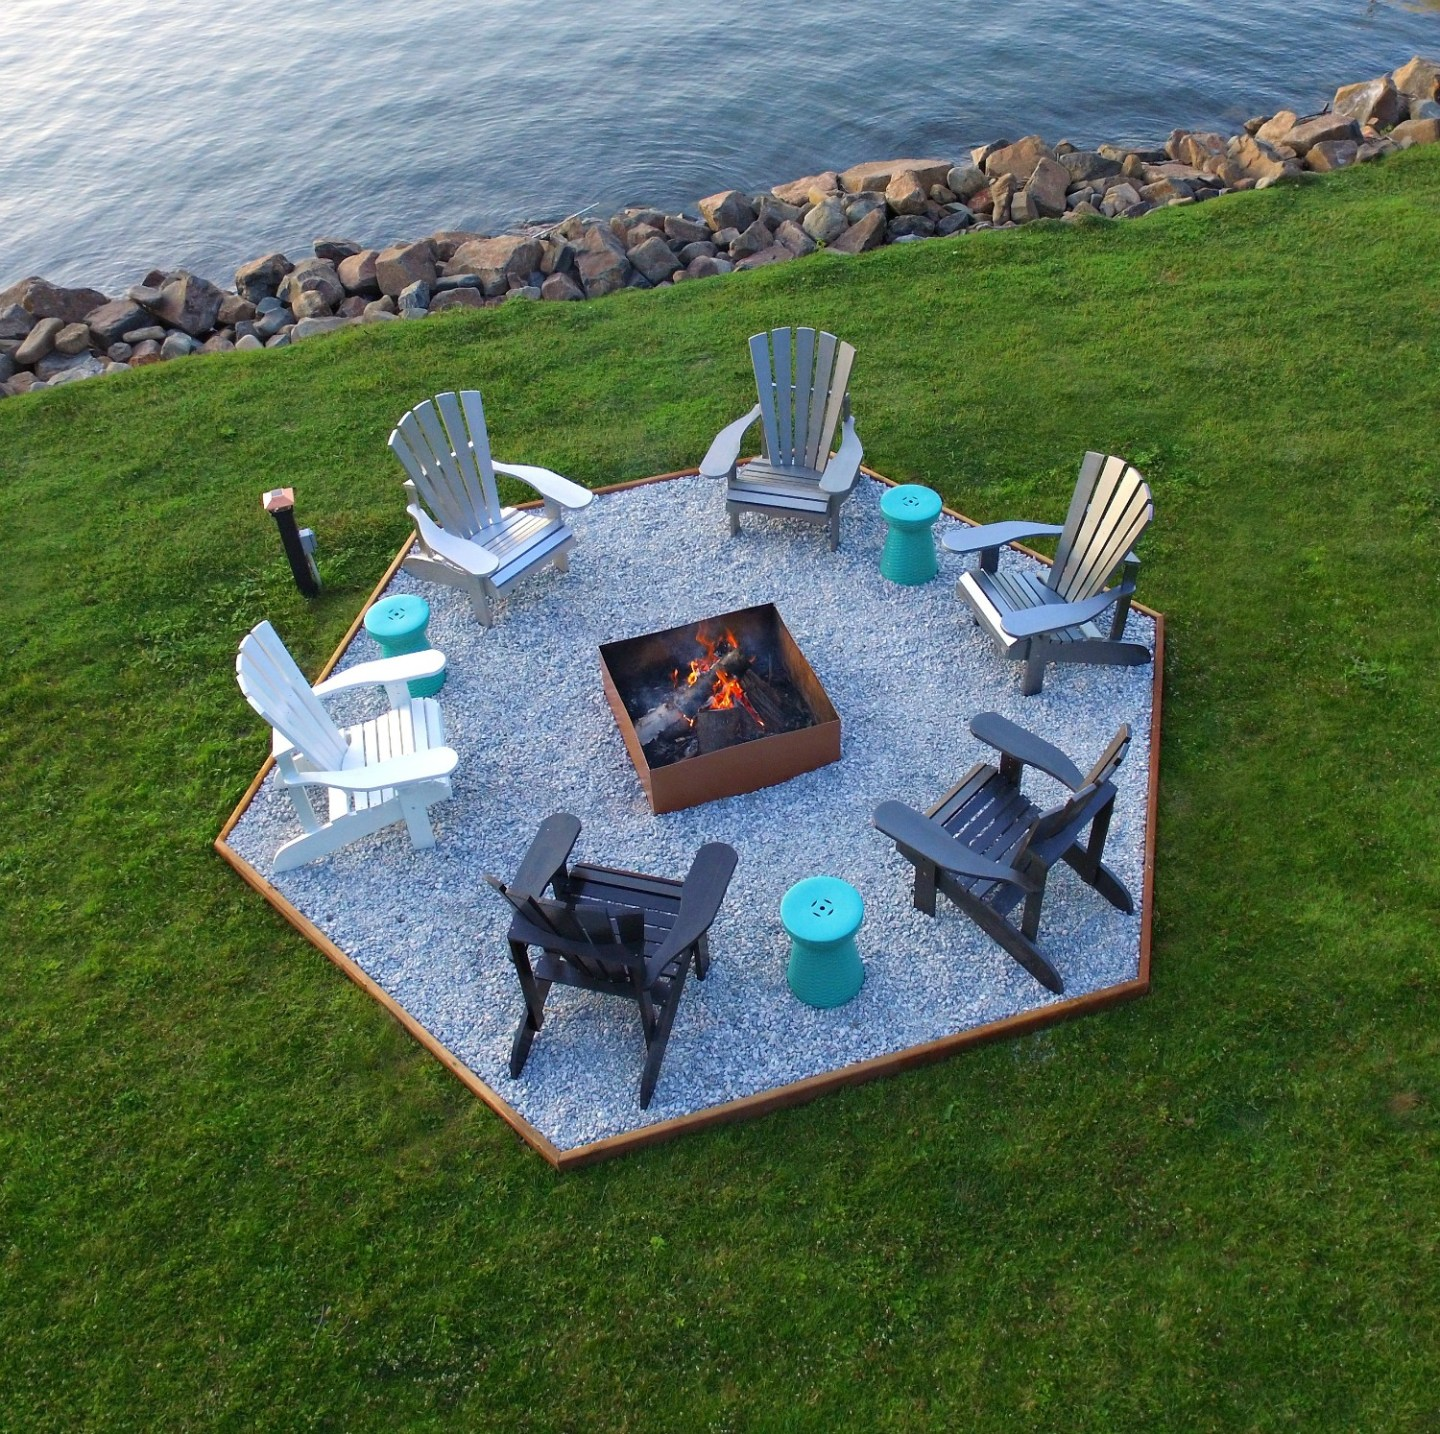 Modern Cottage Fire Pit Makeover + DIY Ombre Adirondack Chairs (Sponsored by The Home Depot Canada)